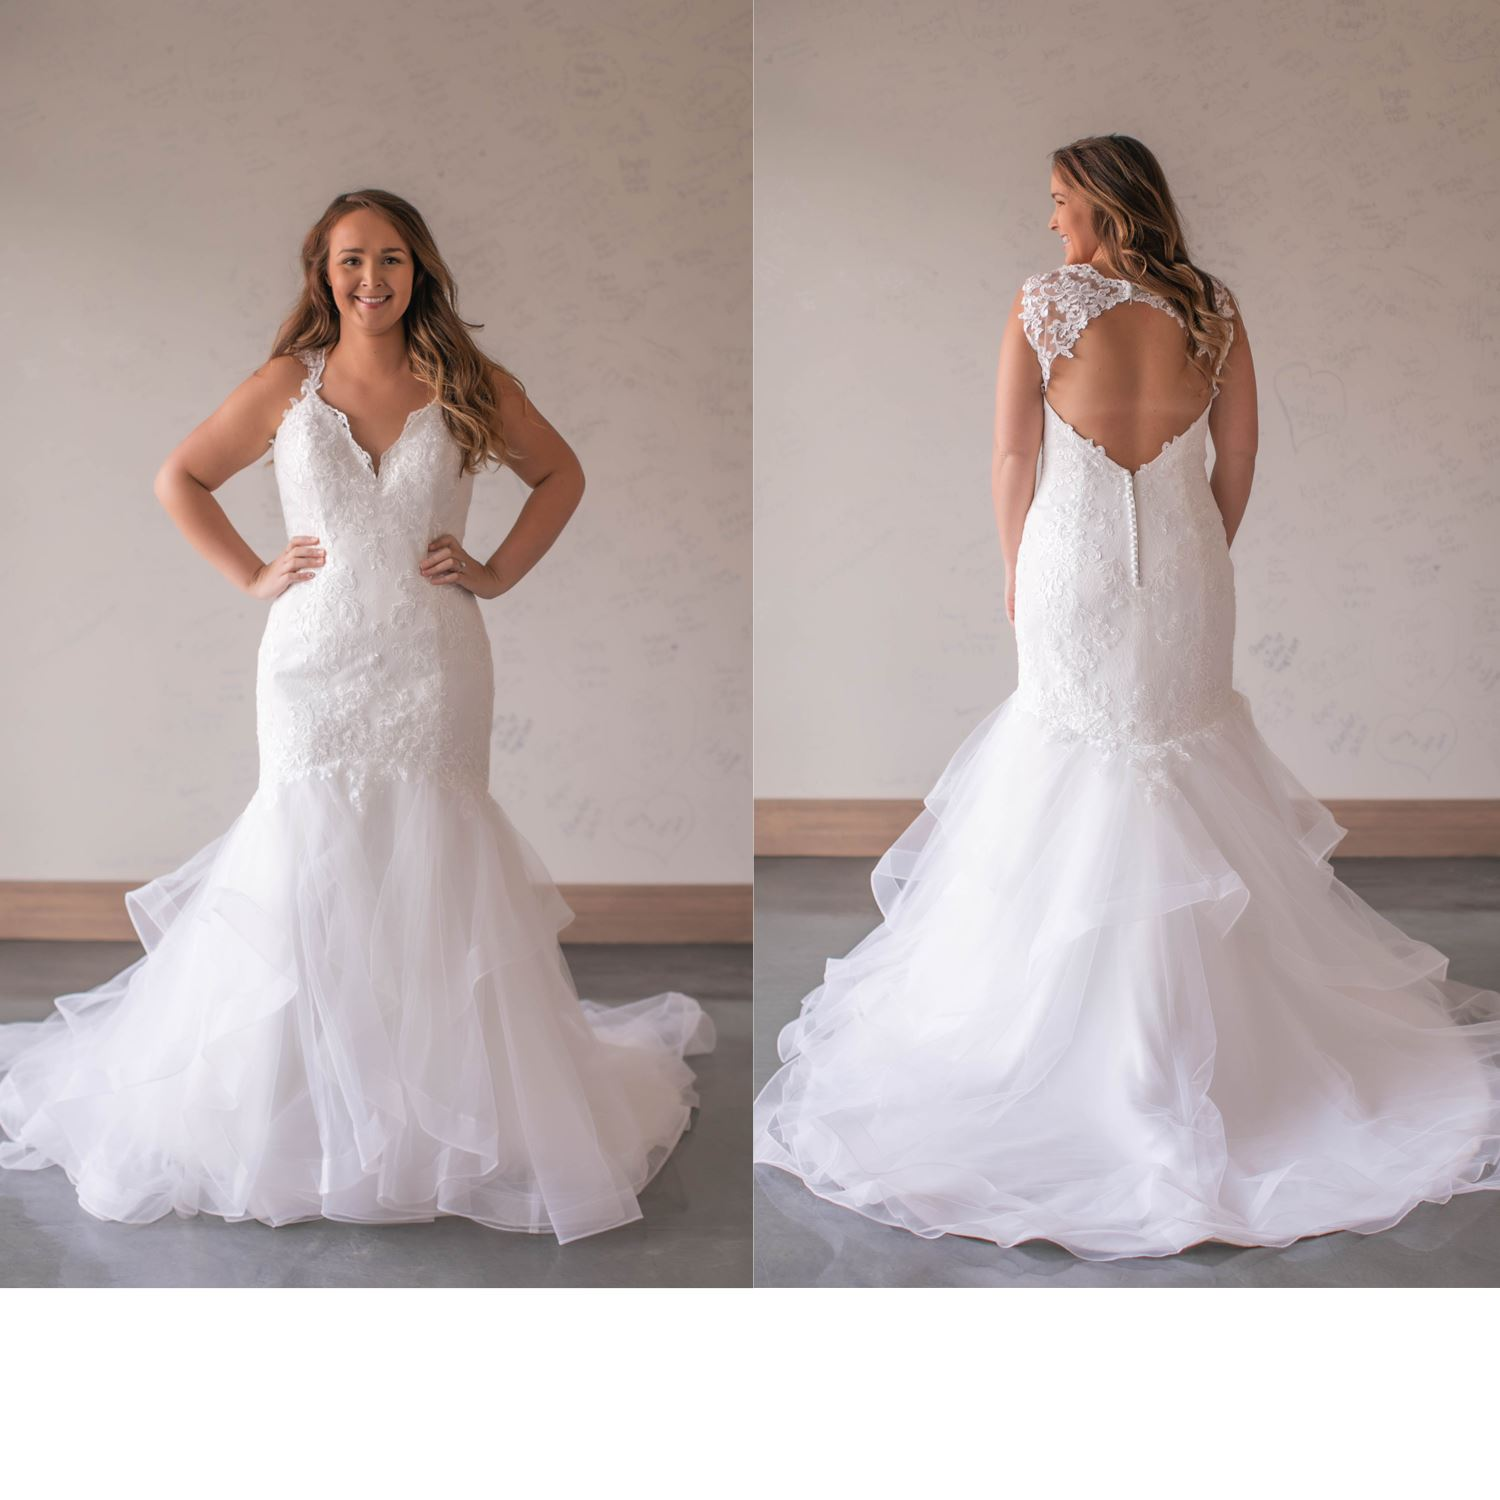 Layla - Size 14 - Ivory - Originally priced $999 - Sample box price $799